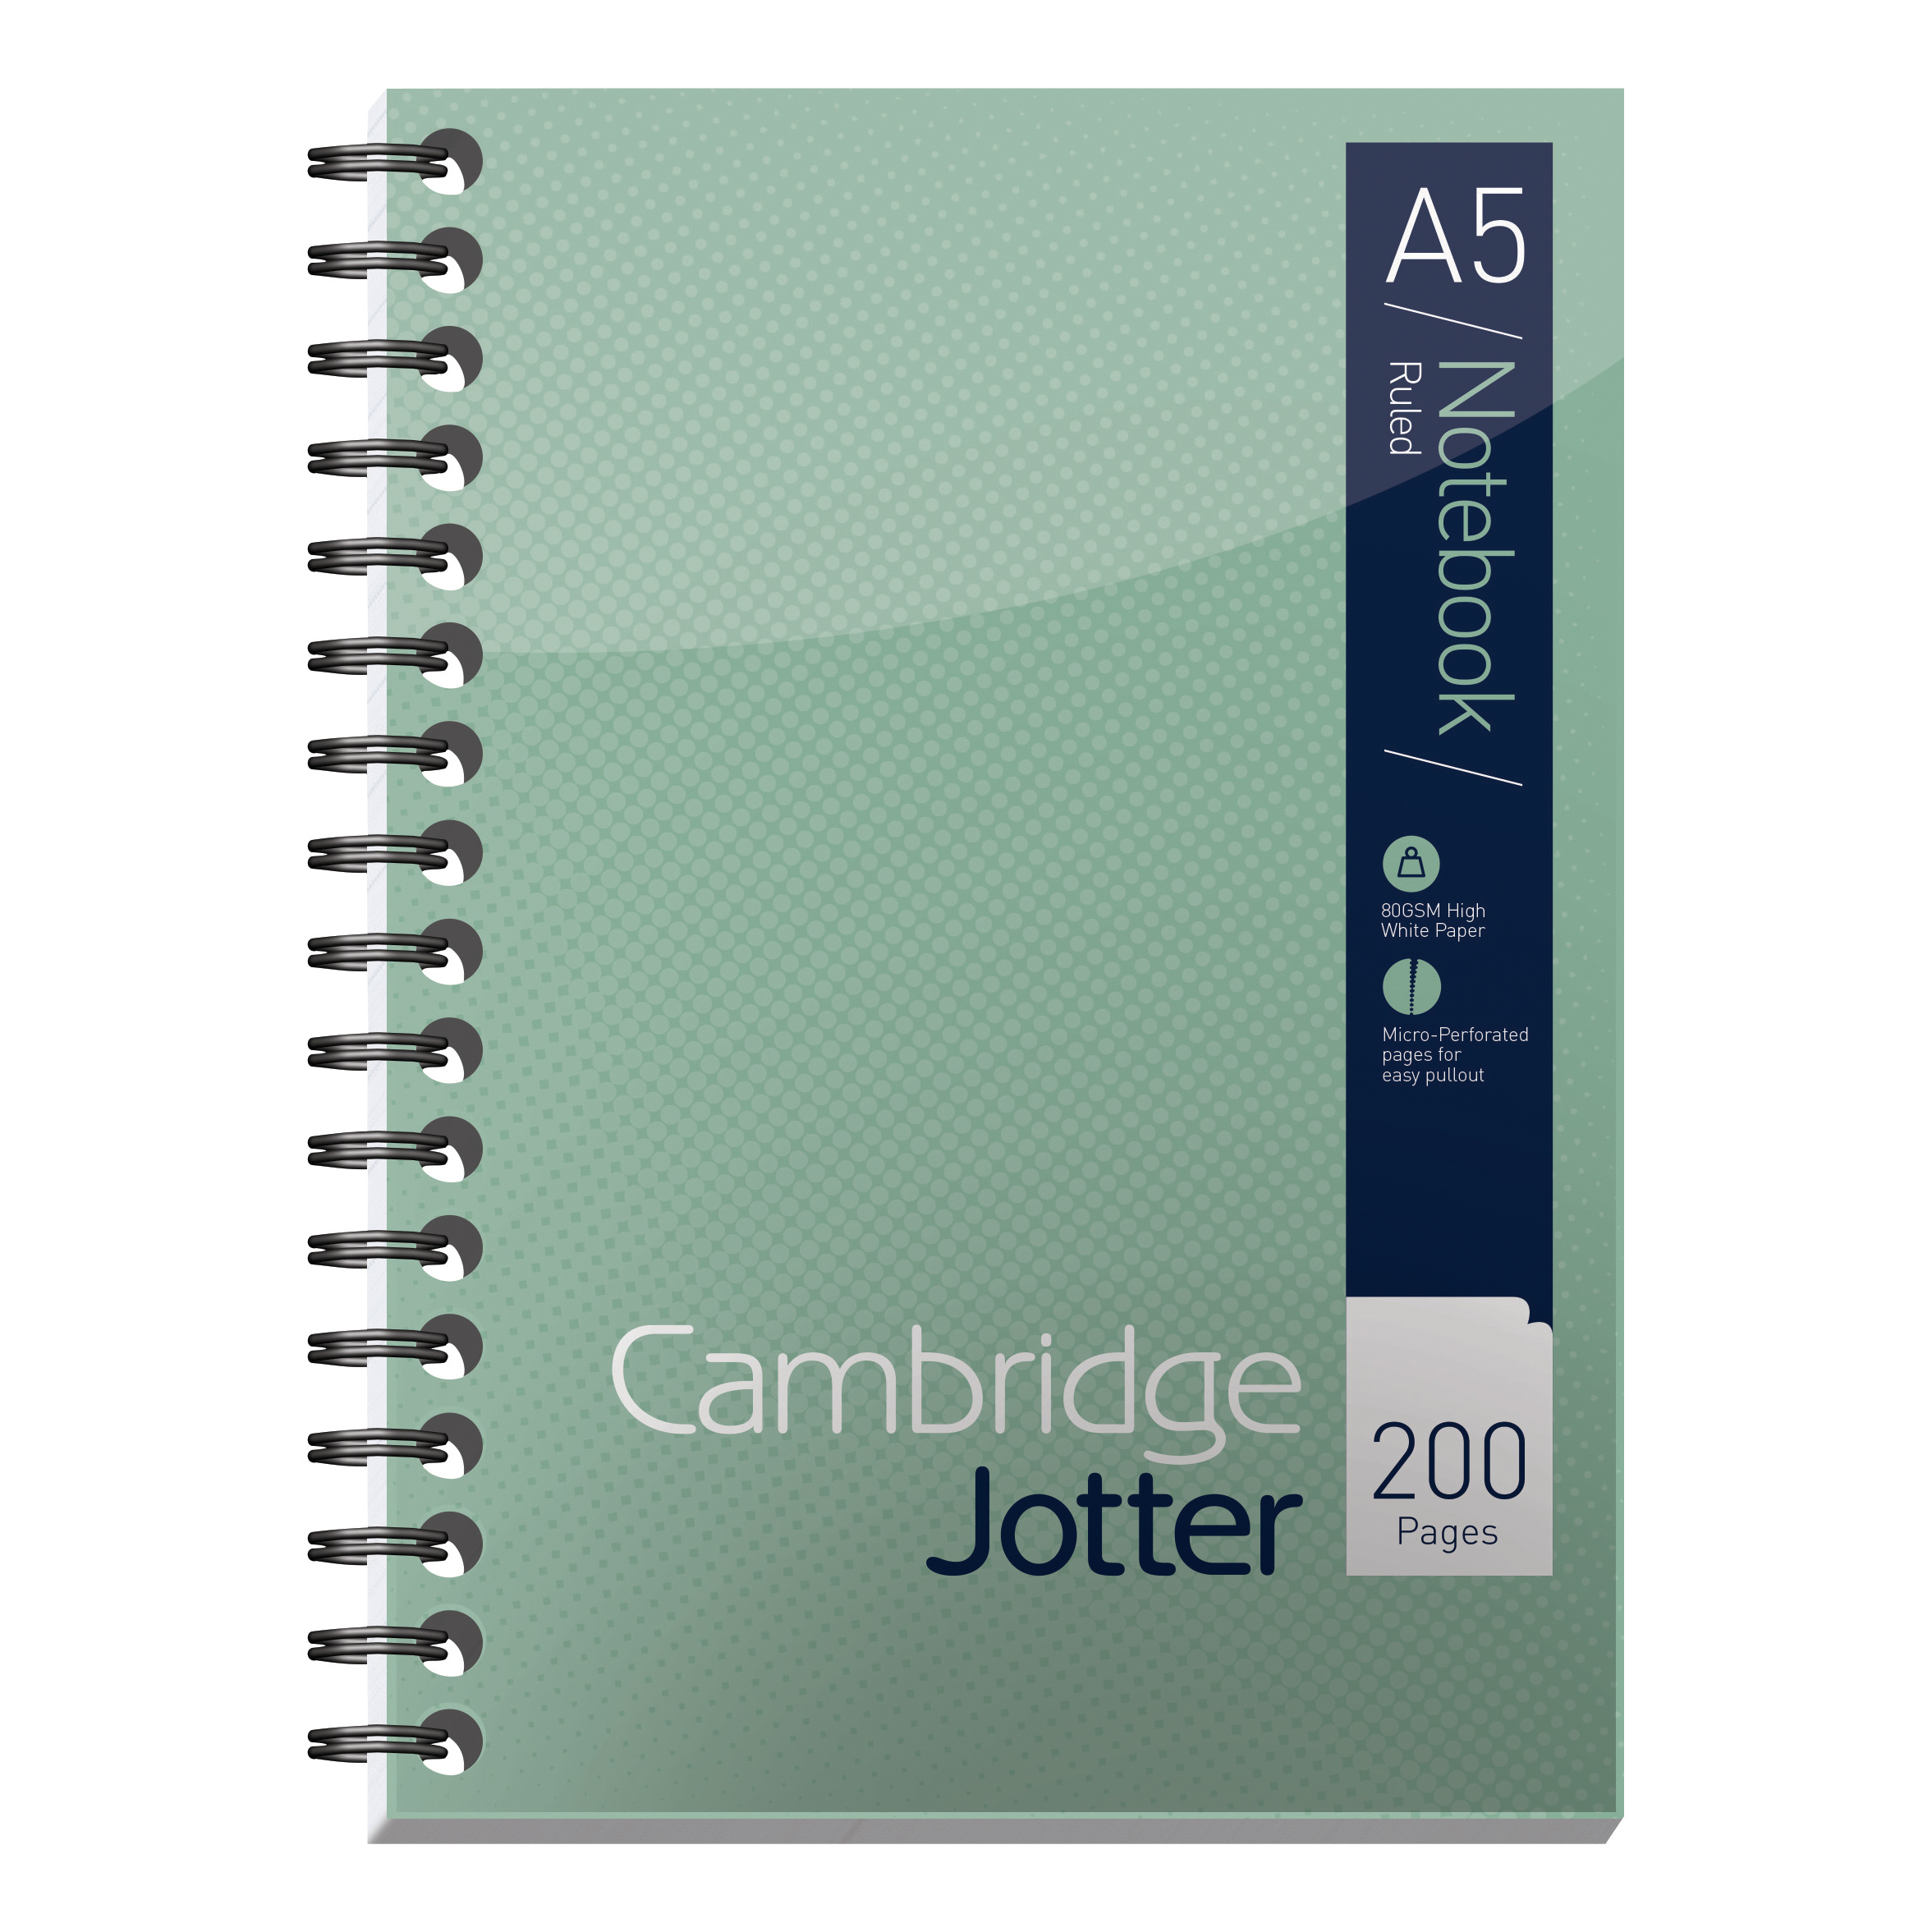 Spiral Note Books Cambridge Jotter Notebook Wirebound 80gsm Ruled Margin and Perforated 200pp A5 Ref 400039063 Pack 3